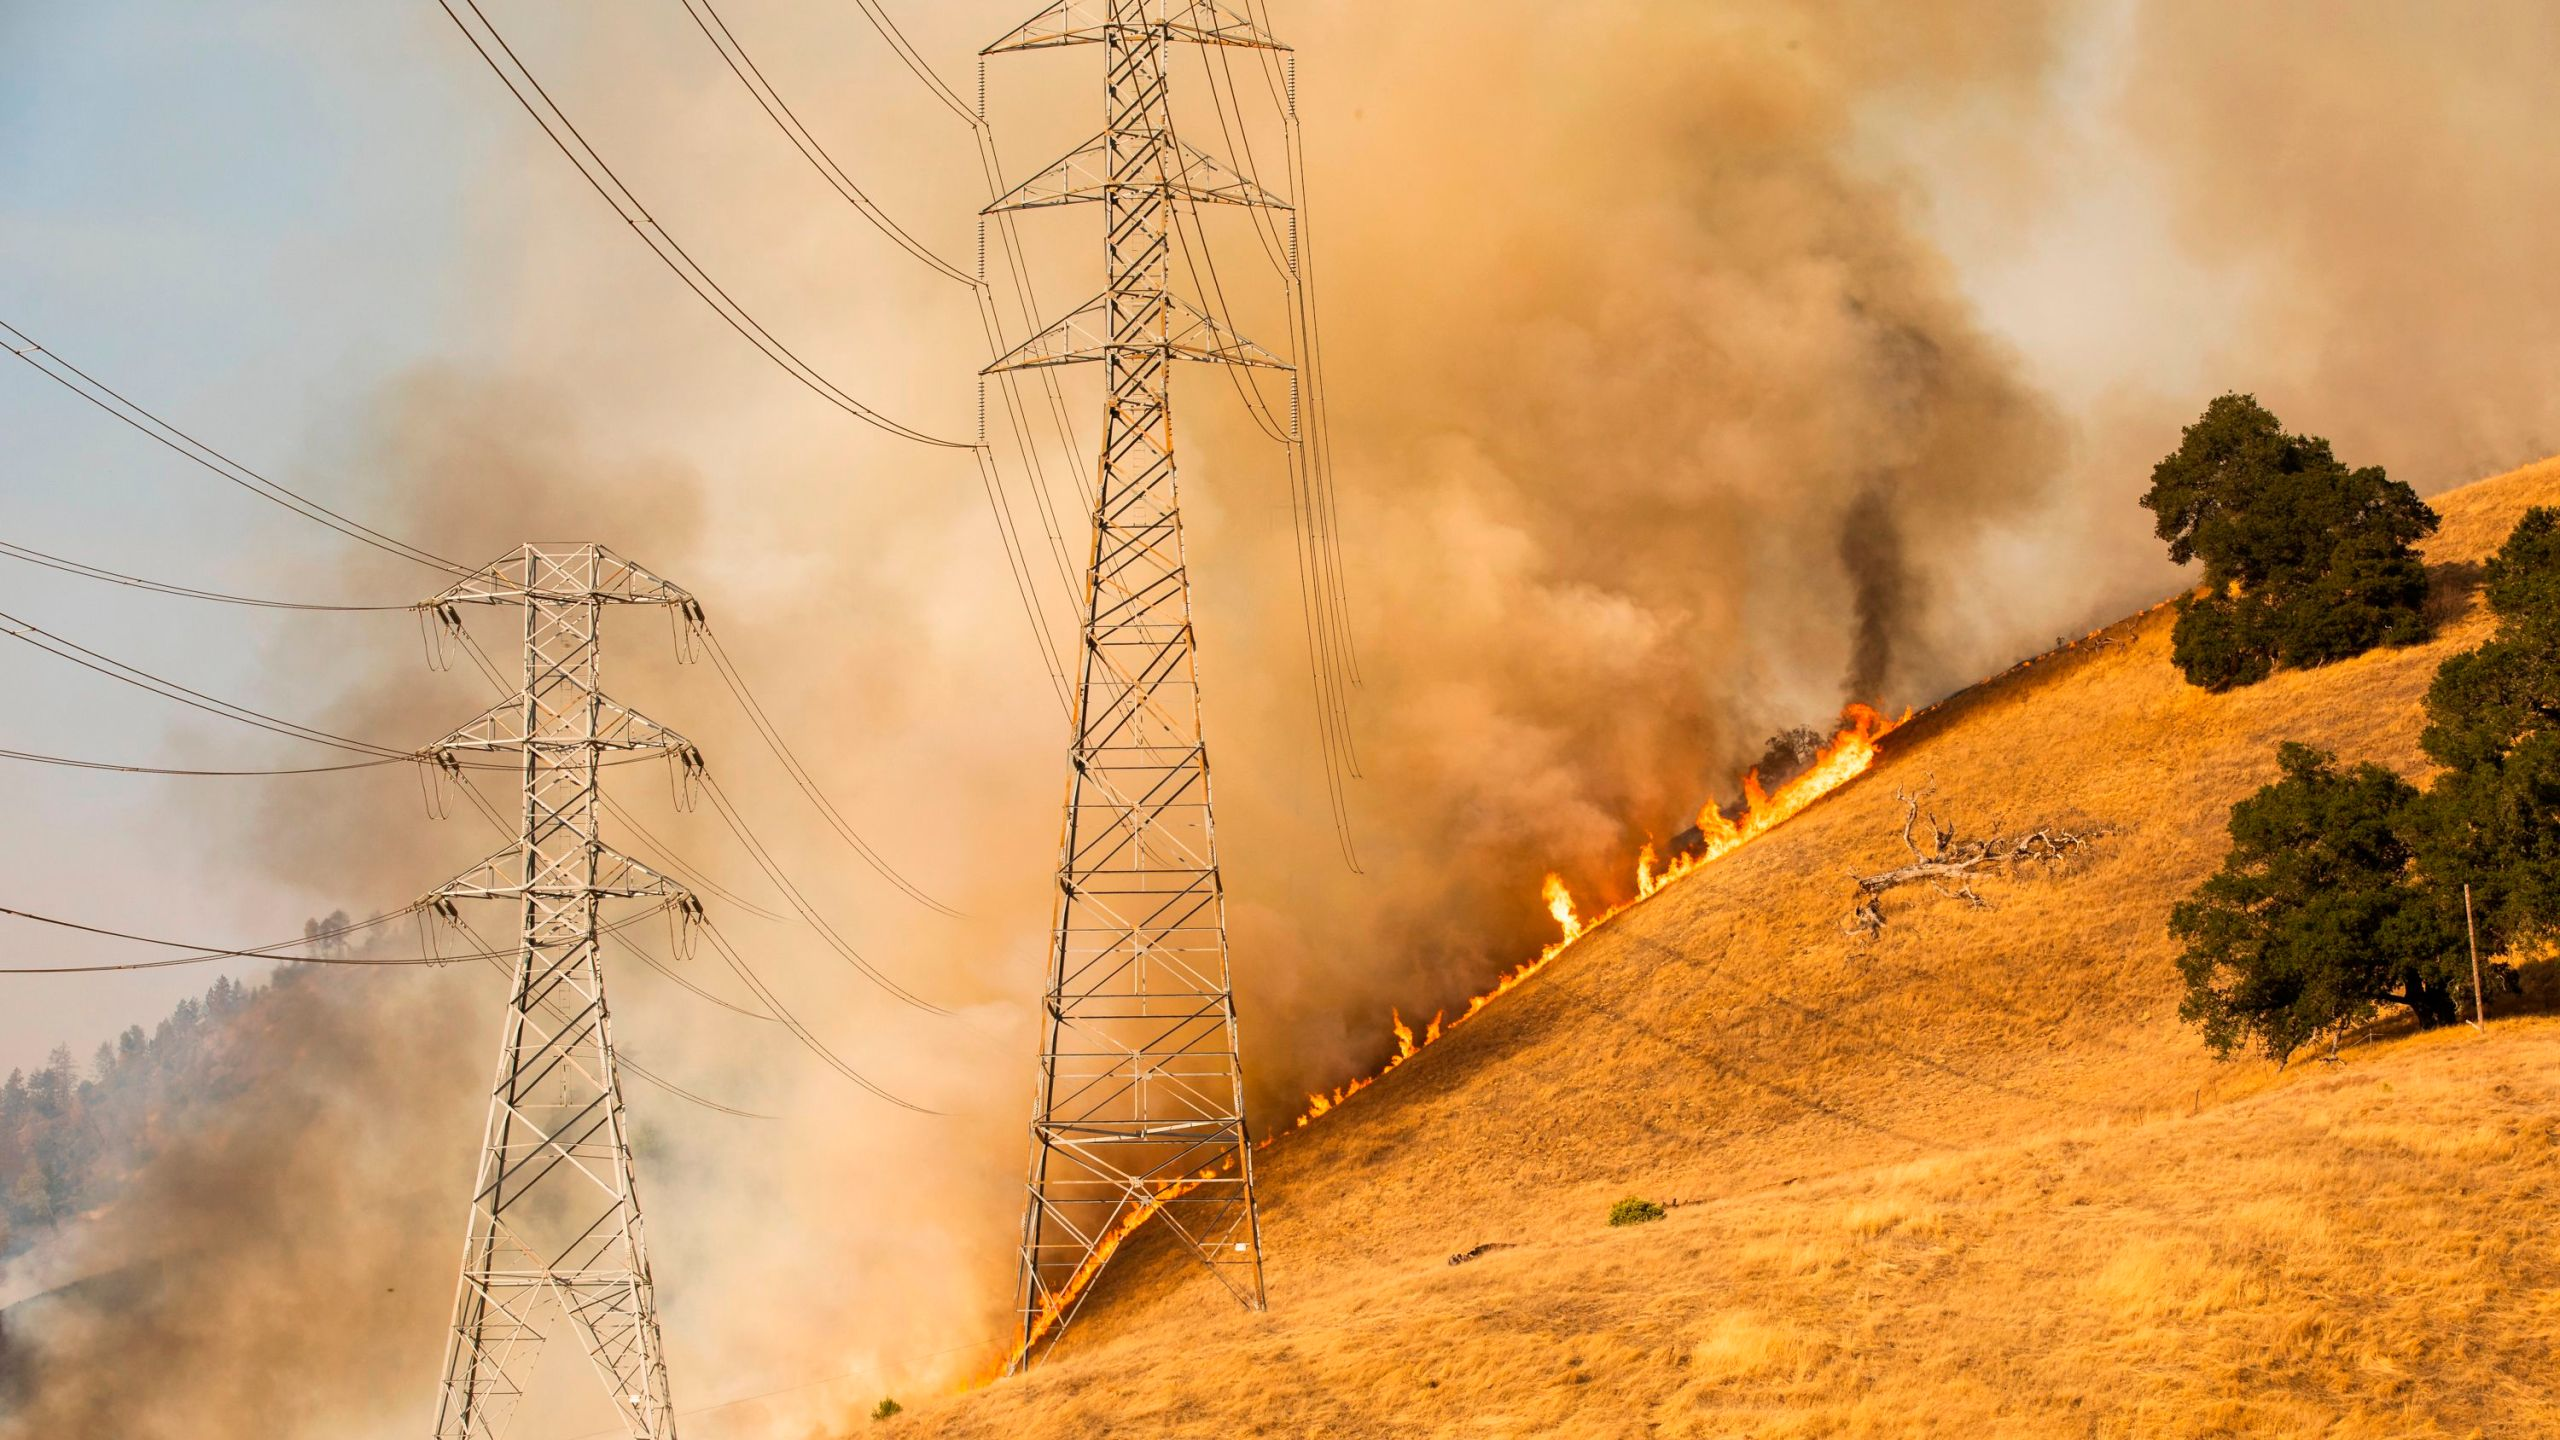 A back fire set by fire fighters burns a hillside behind PG&E power lines during firefighting operations to battle the Kincade Fire in Healdsburg, California, on Oct. 26, 2019. (PHILIP PACHECO/AFP via Getty Images)